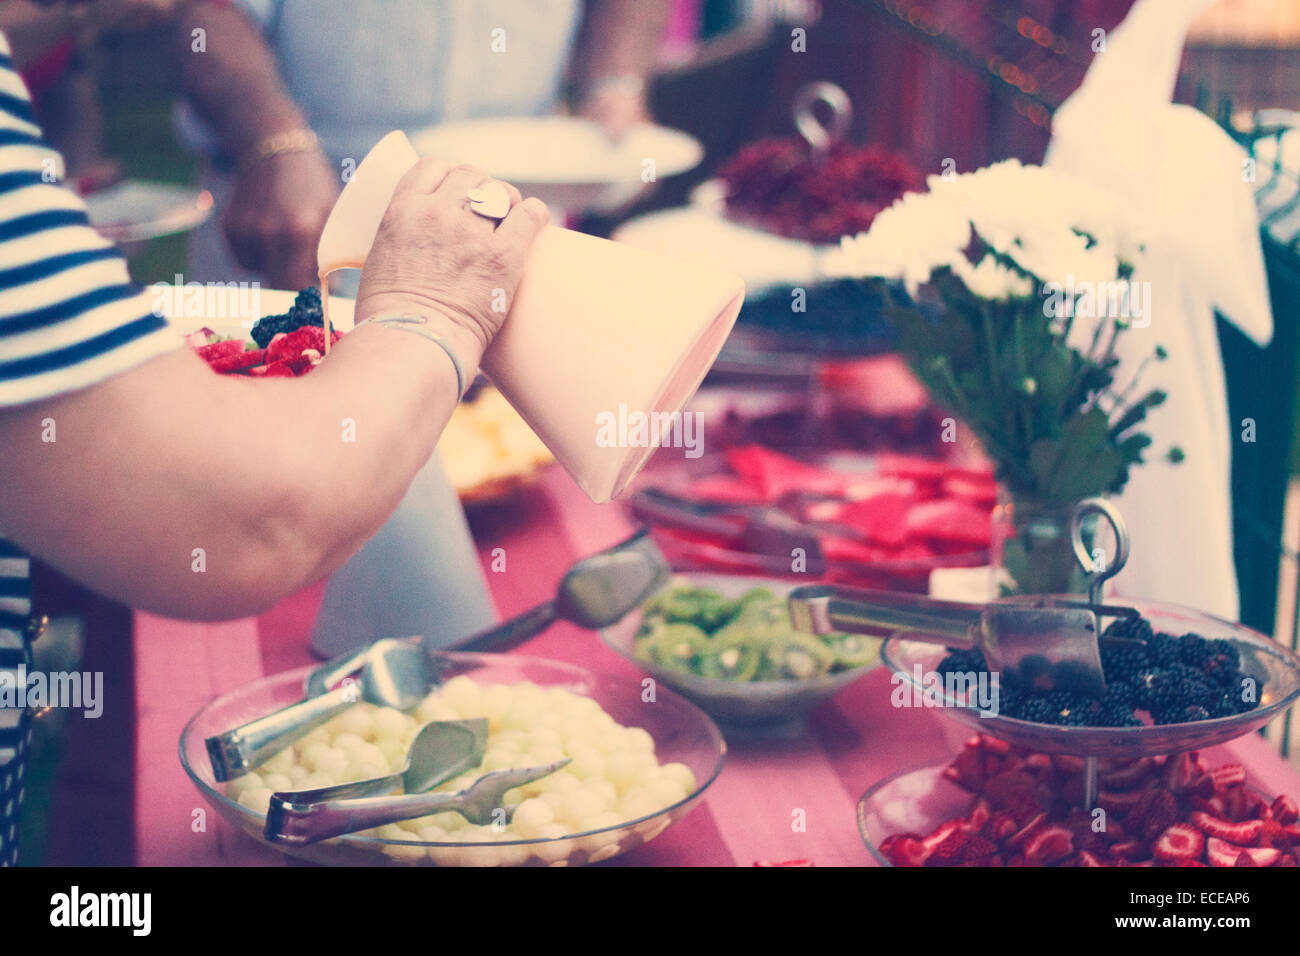 Woman eating at party - Stock Image